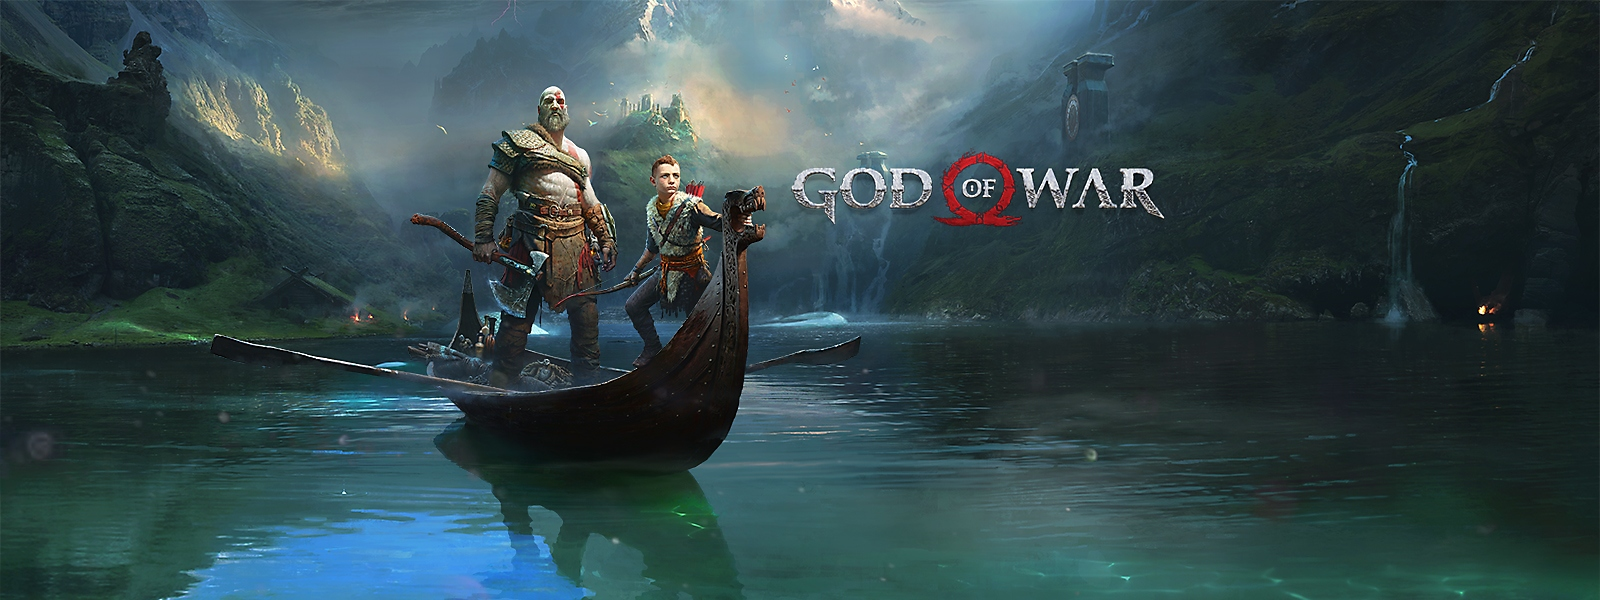 بطل god of war